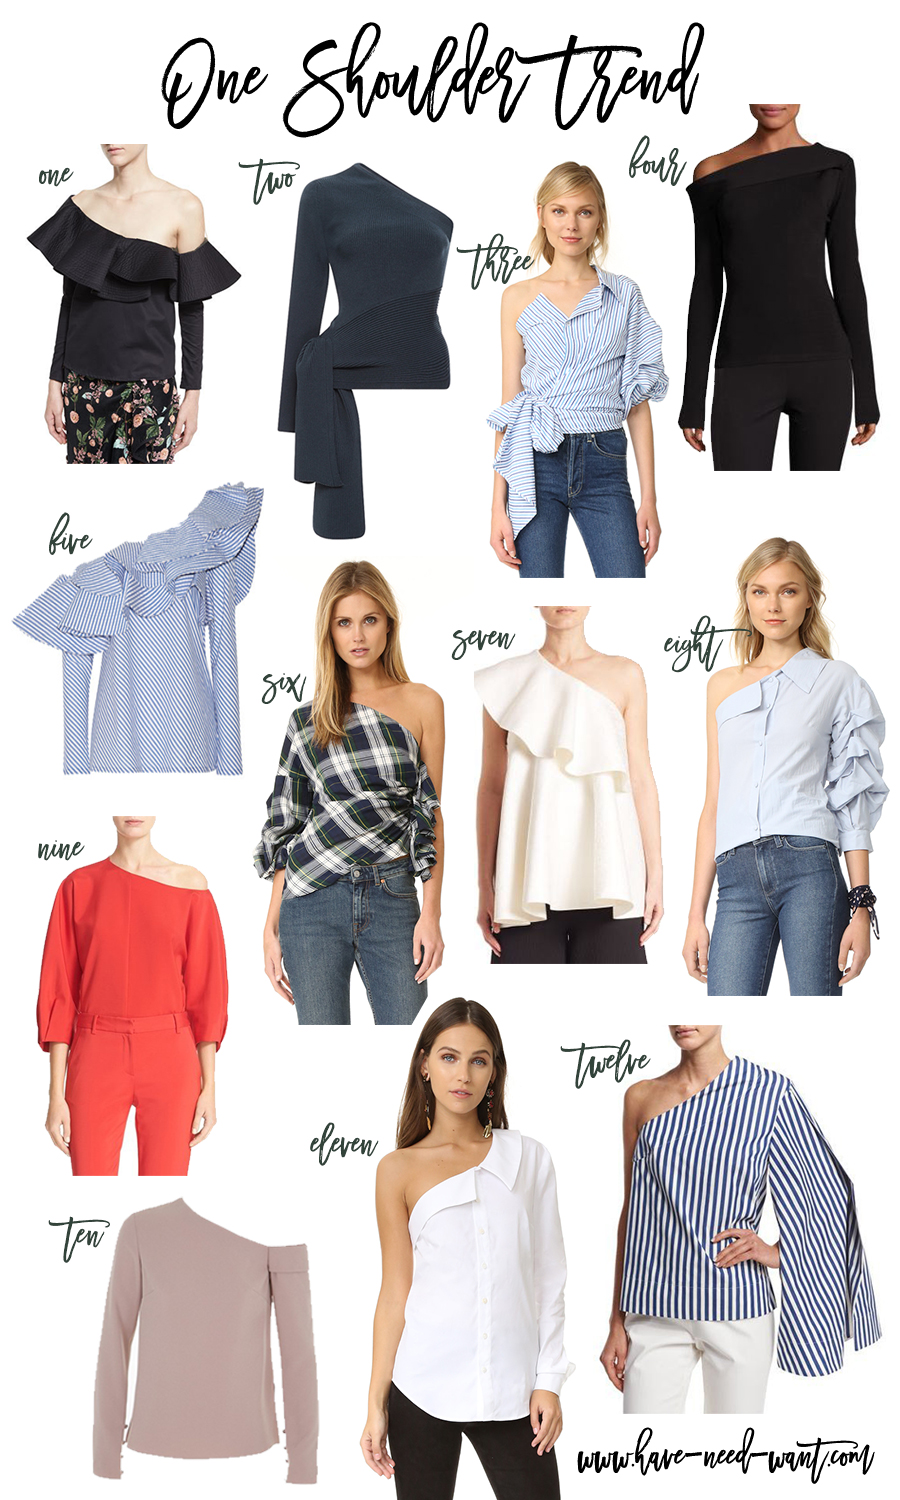 one-shoulder-trend-one-shoulder-tops-fall-2016-trend-one-sleeve-top-large-ruffle-top